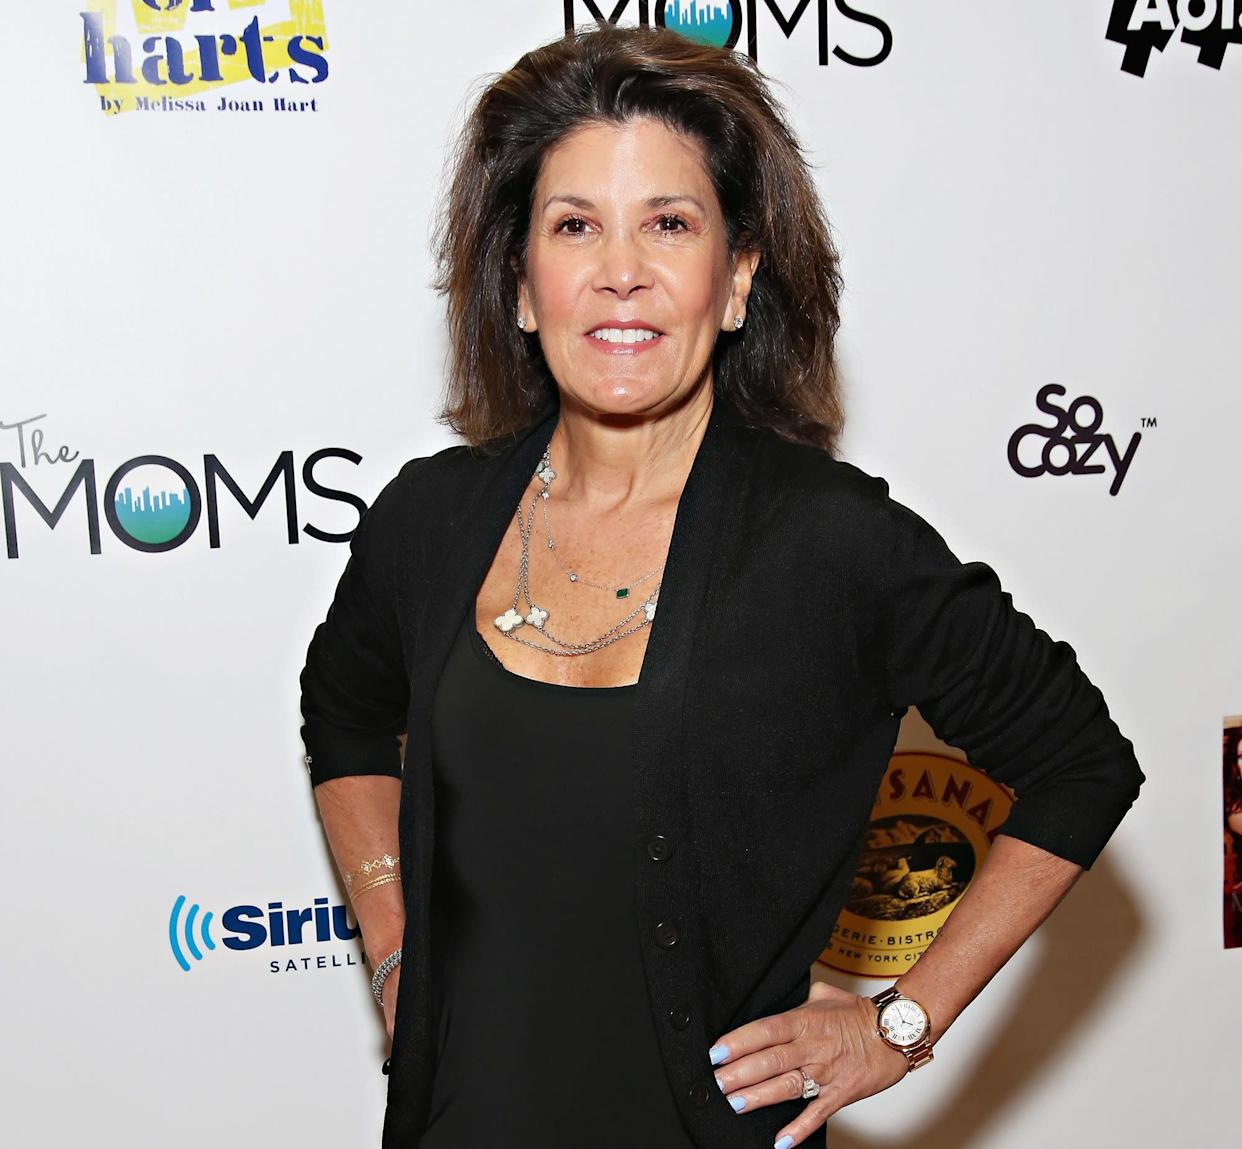 <strong>Her account: </strong>In an essay for <span>The Daily Beast i</span>n August 2016, Ross details the sexual harassment she experienced on &amp;ldquo;The Tomorrow Show&amp;rdquo; from Roger Ailes. Ross wrote that Ailes proposed a &amp;ldquo;sexual alliance&amp;rdquo; while she worked on the show. <br><br><strong>Ailes&amp;rsquo; response</strong>: None.<br><br><strong>When we found out: </strong>August 8, 2016<br><br><strong>When she says it happened: </strong>1981